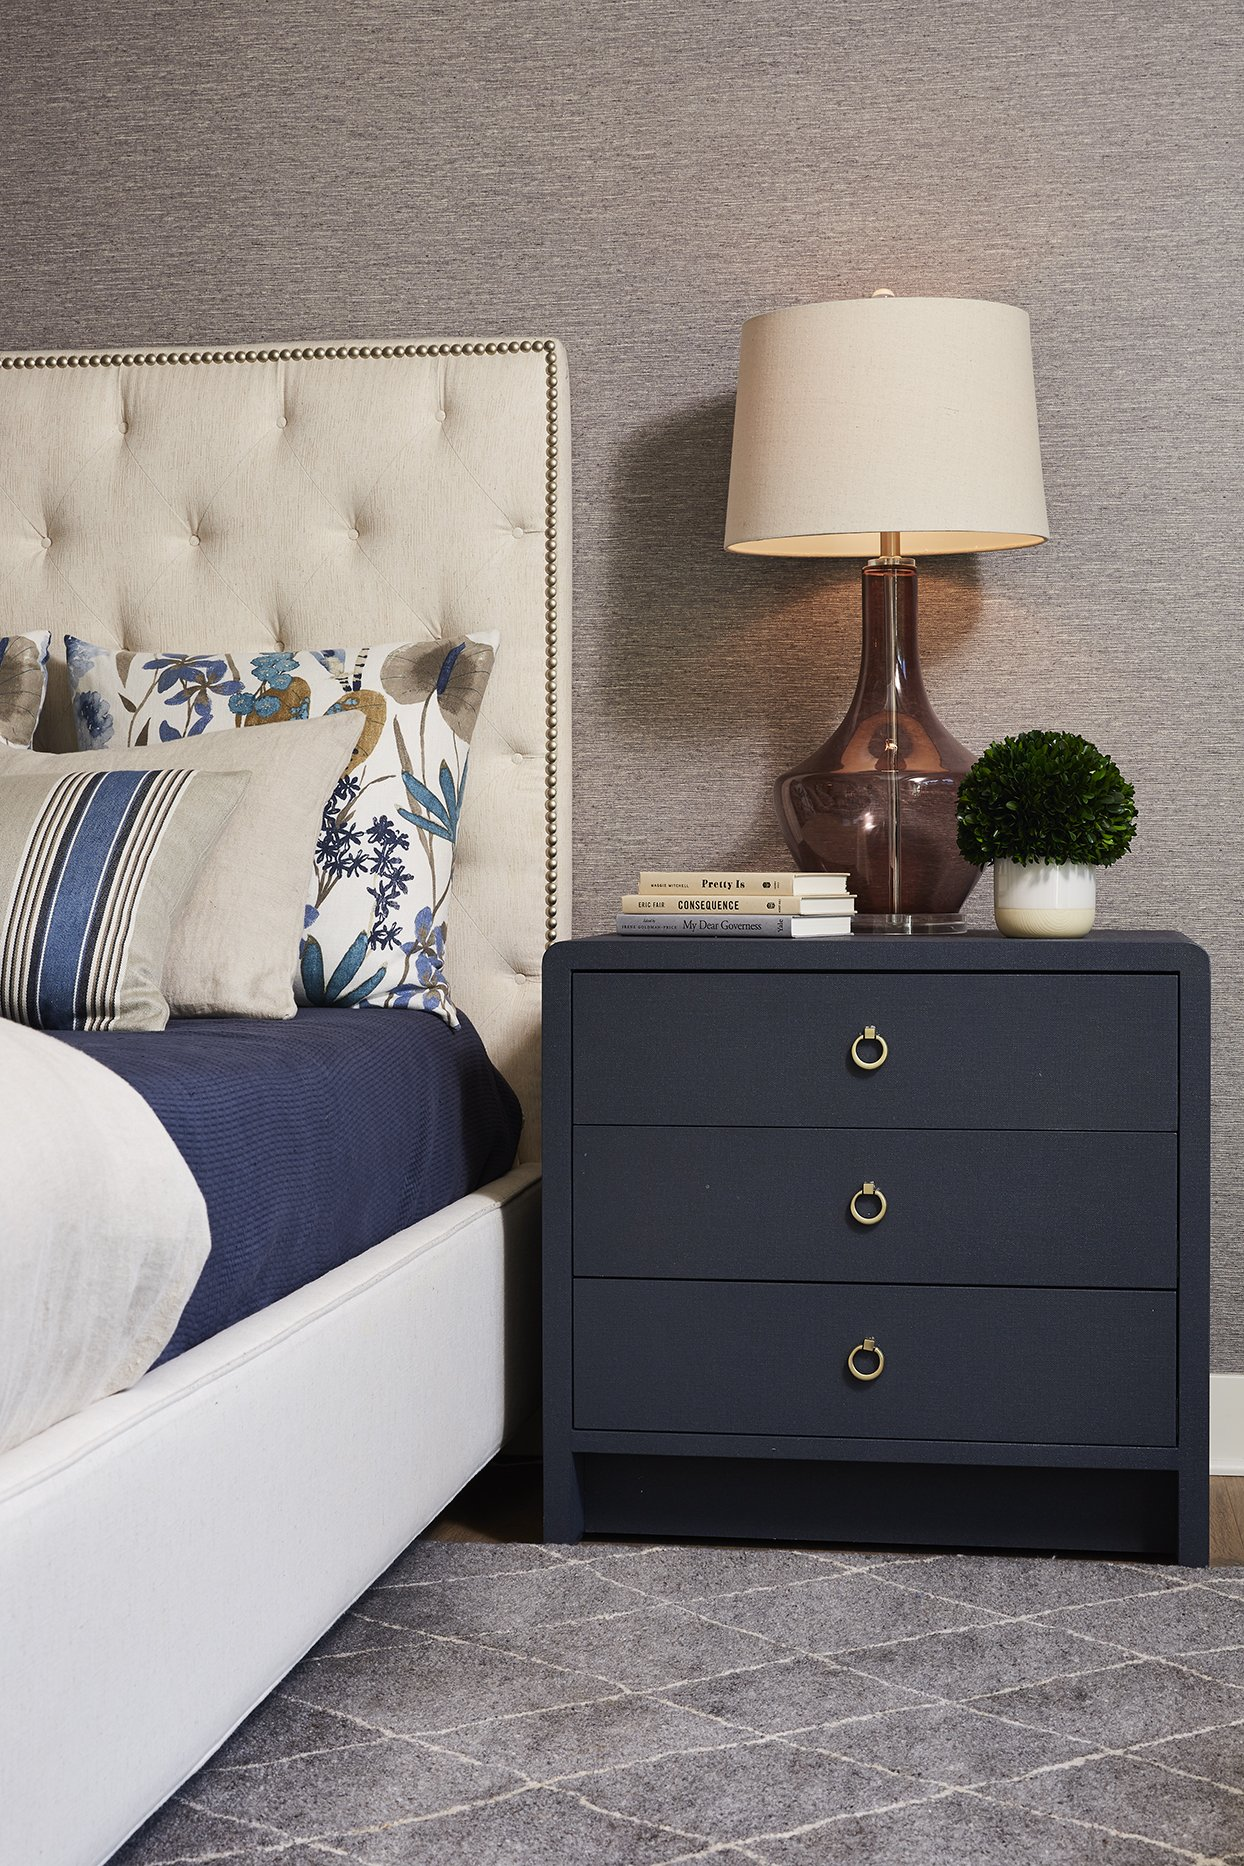 In this master bedroom, we opted for a deep blue color scheme layered in both traditionally masculine and feminine patterns, with stripes and florals paired together for a curated bedroom look. / Design by Sneak Peek Design